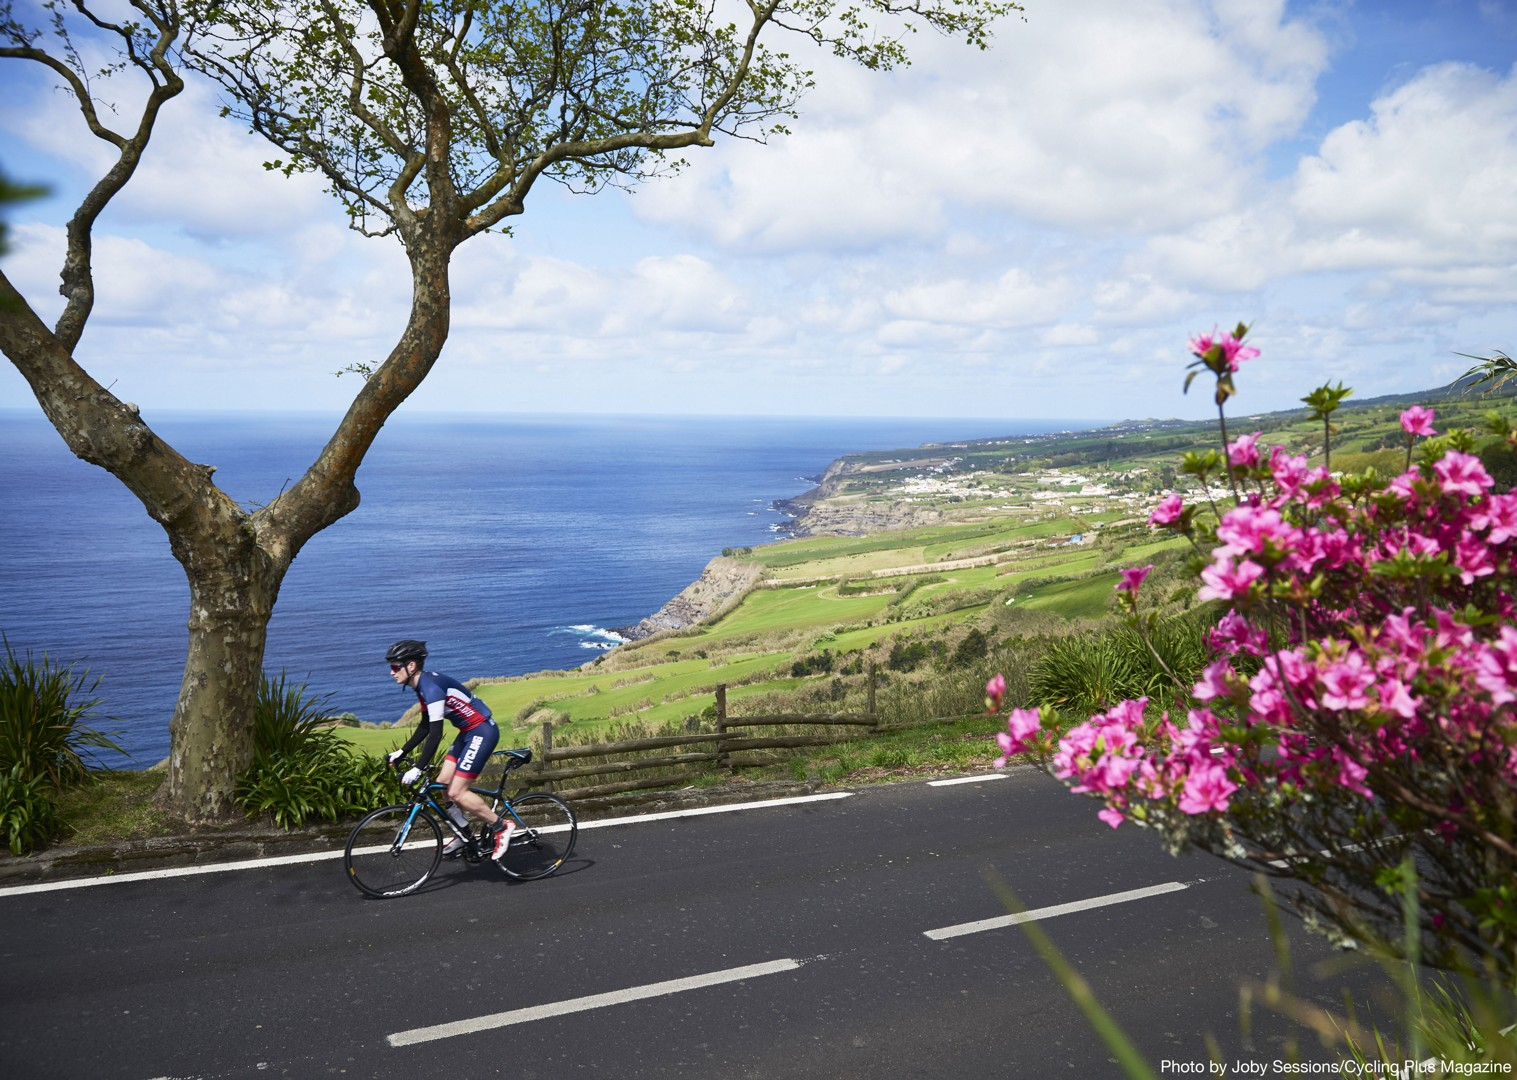 guided-road-cycling-holiday-portugal-the-azores-sao-miguel.JPG - The Azores - Lost World of Sao Miguel - Road Cycling